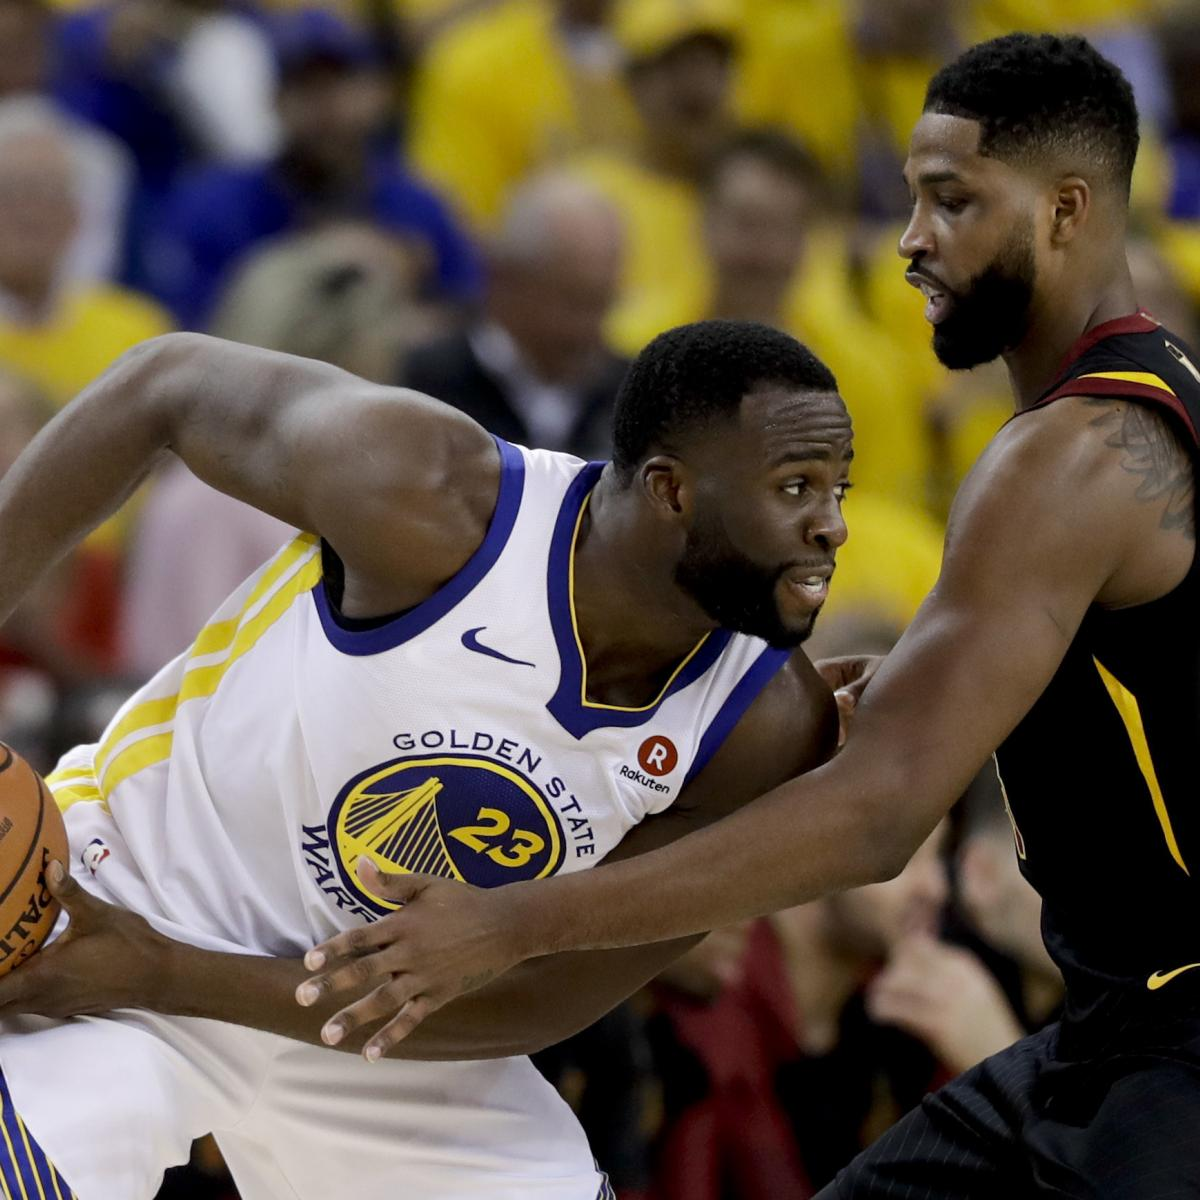 Cleveland Parade to Celebrate Tristan Thompson Punching Draymond Green Canceled